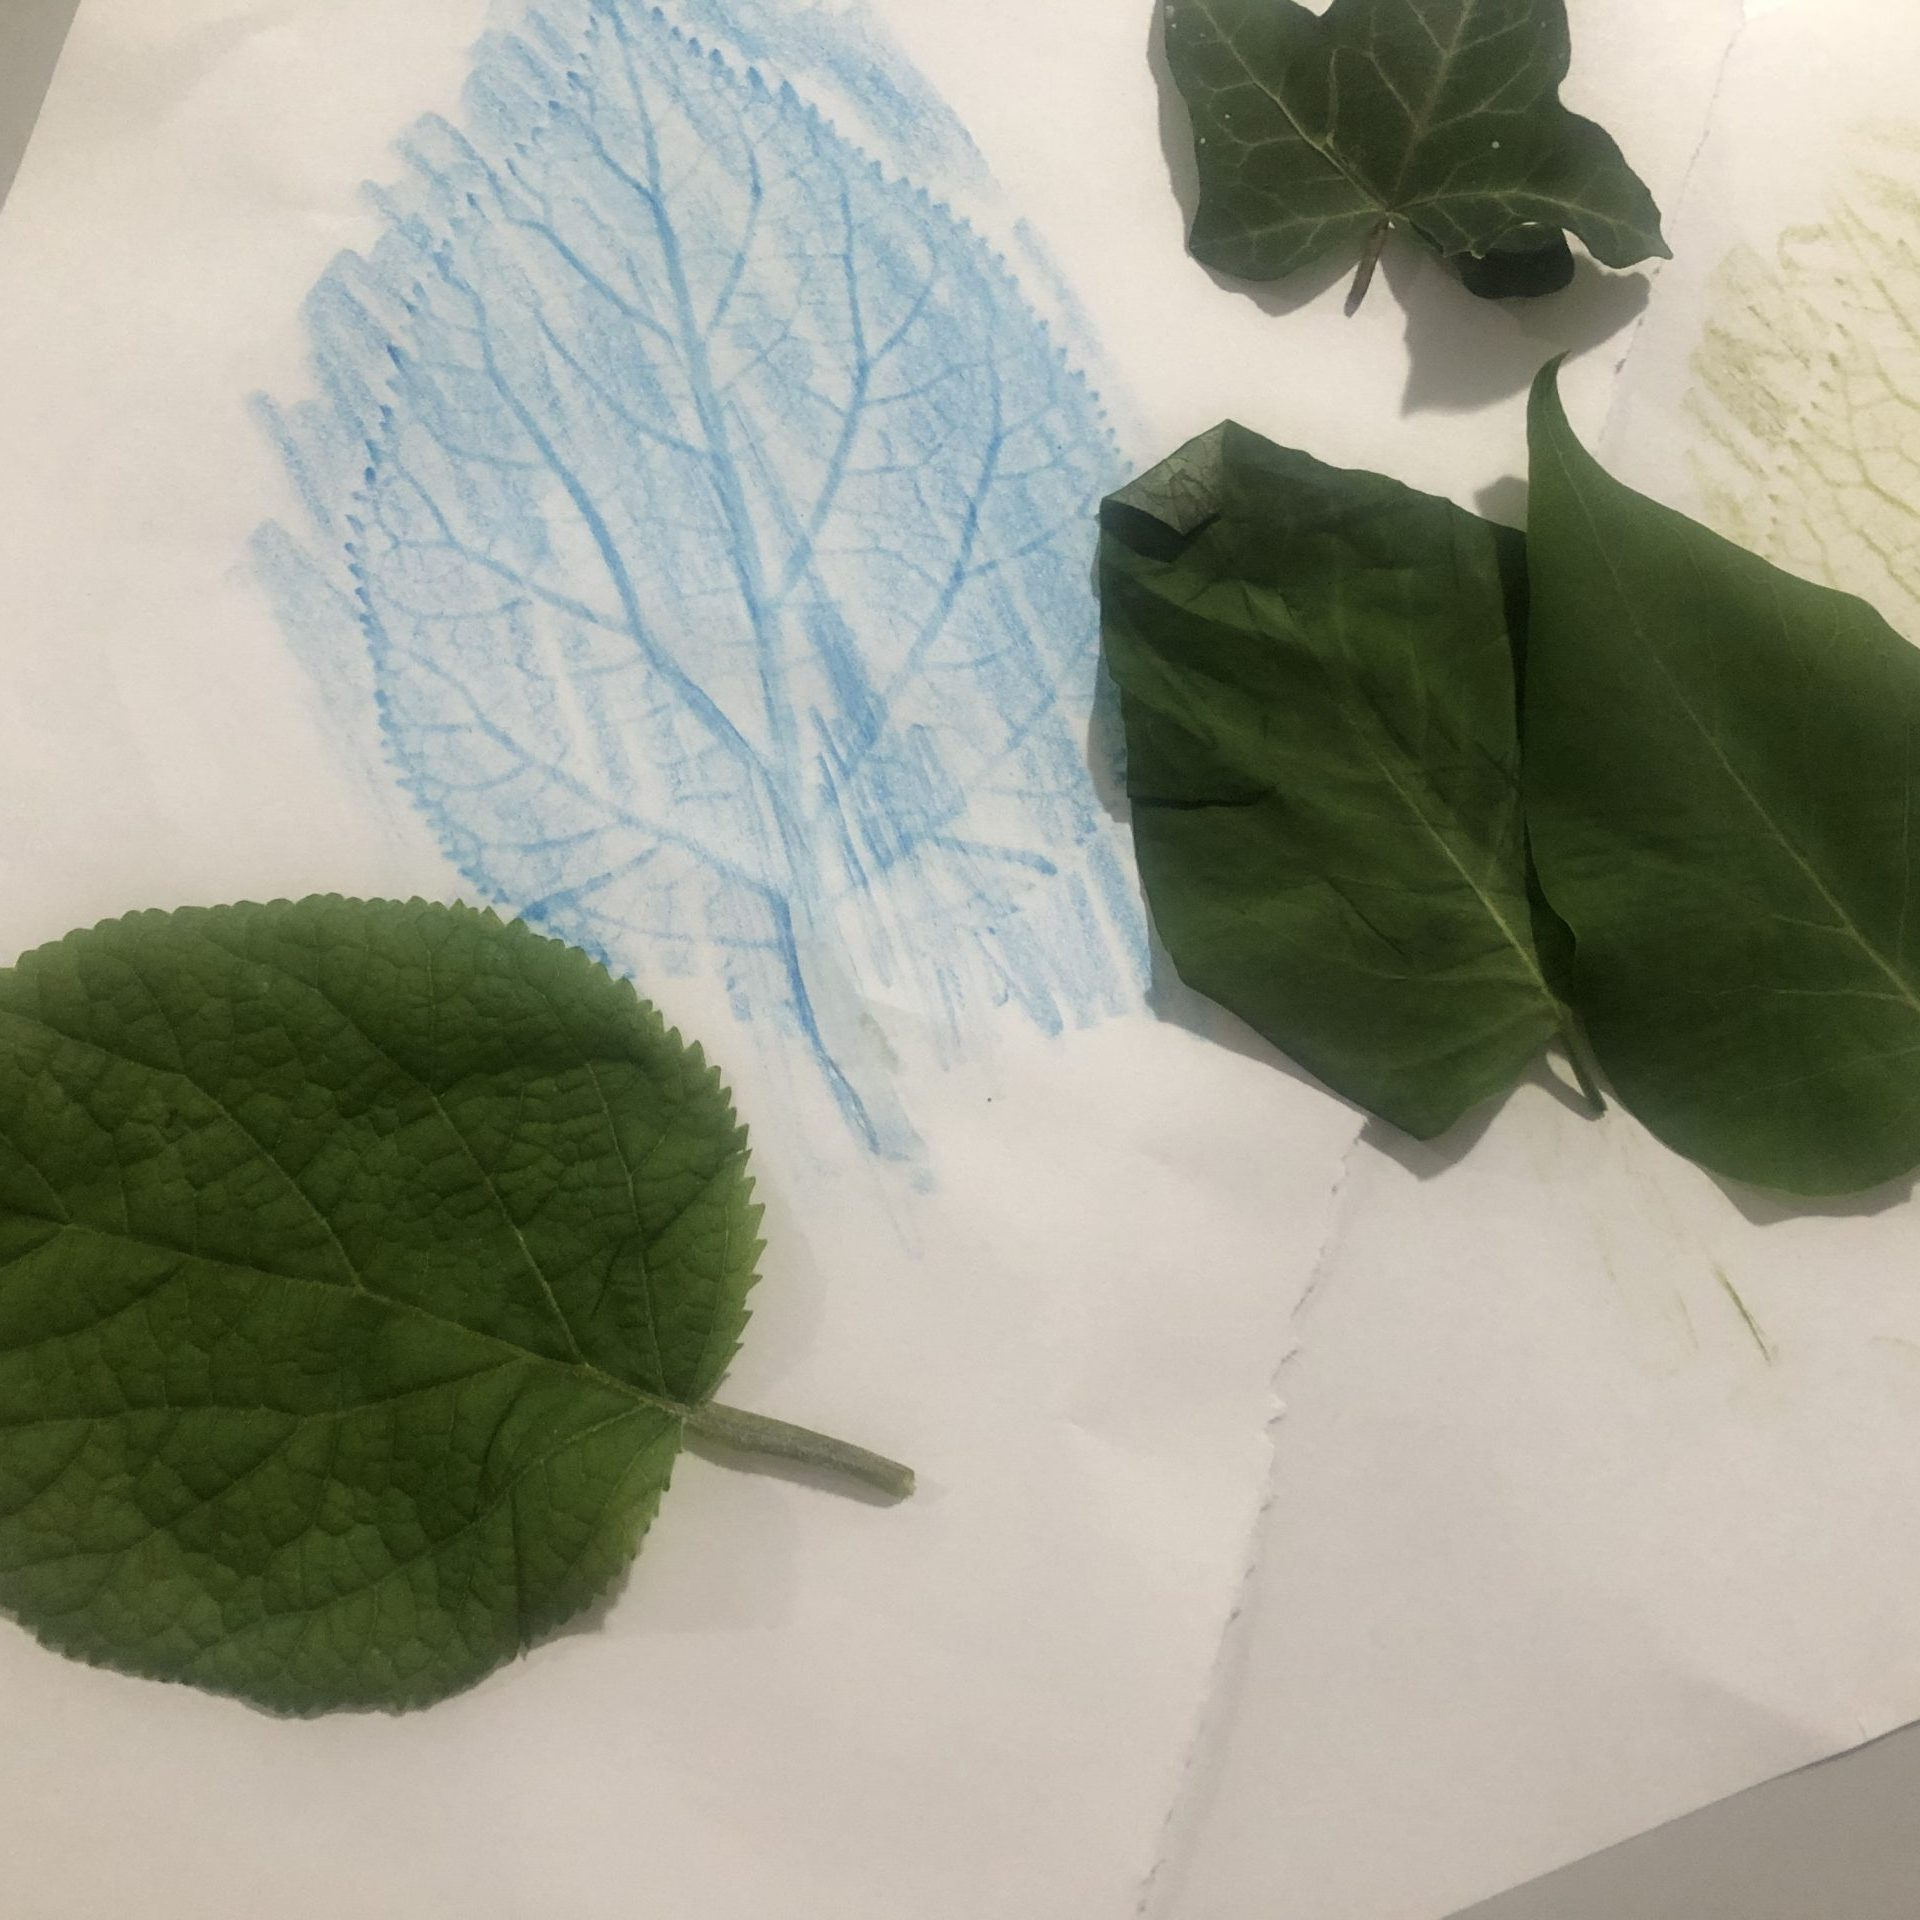 Leaf Rubbings